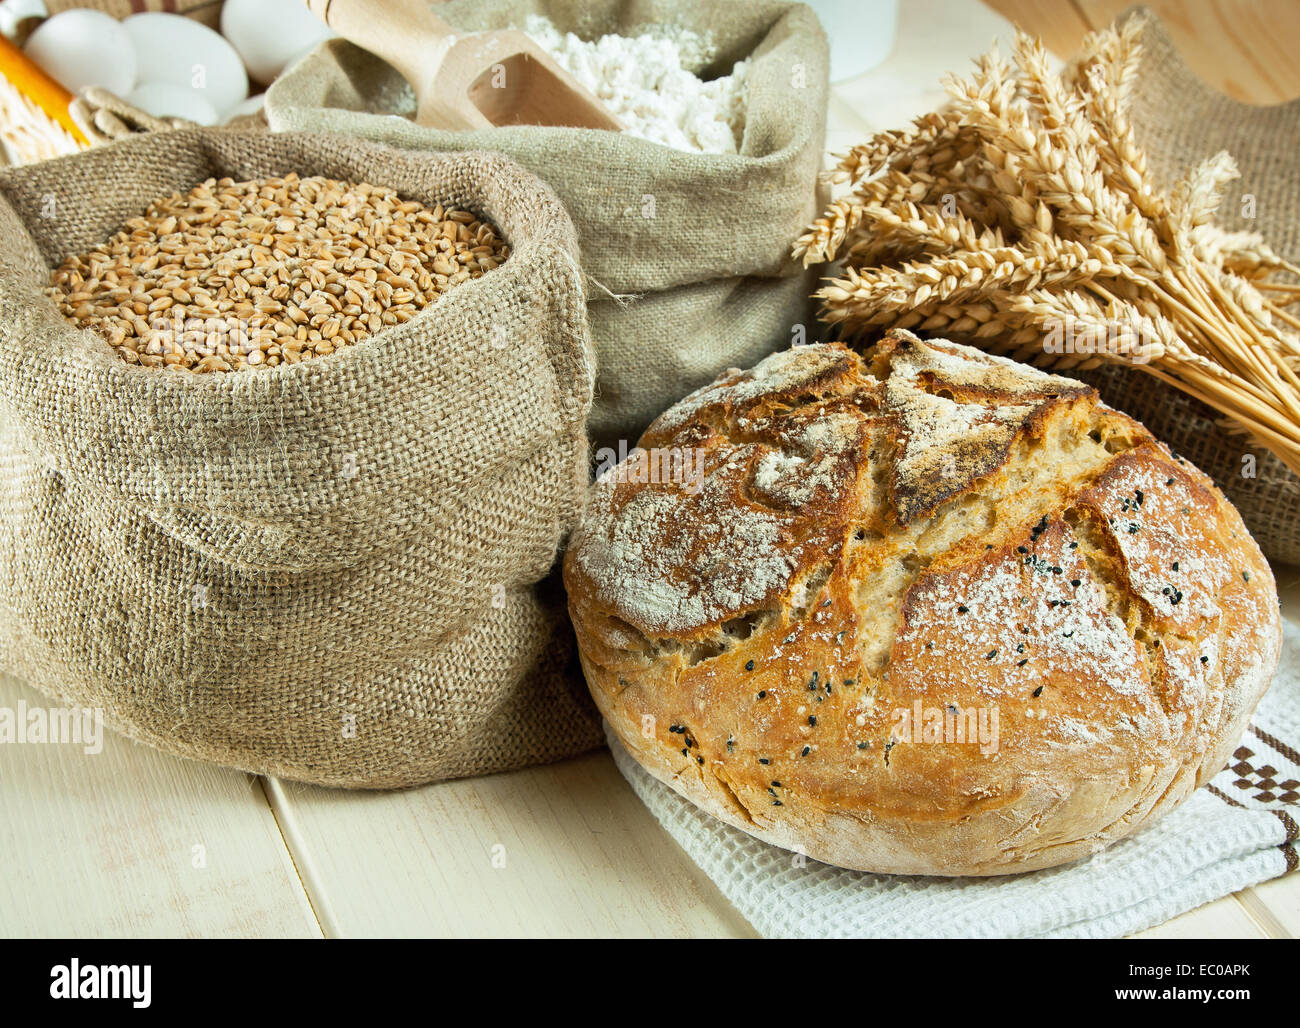 Homemade bread and wheat grain on table - Stock Image